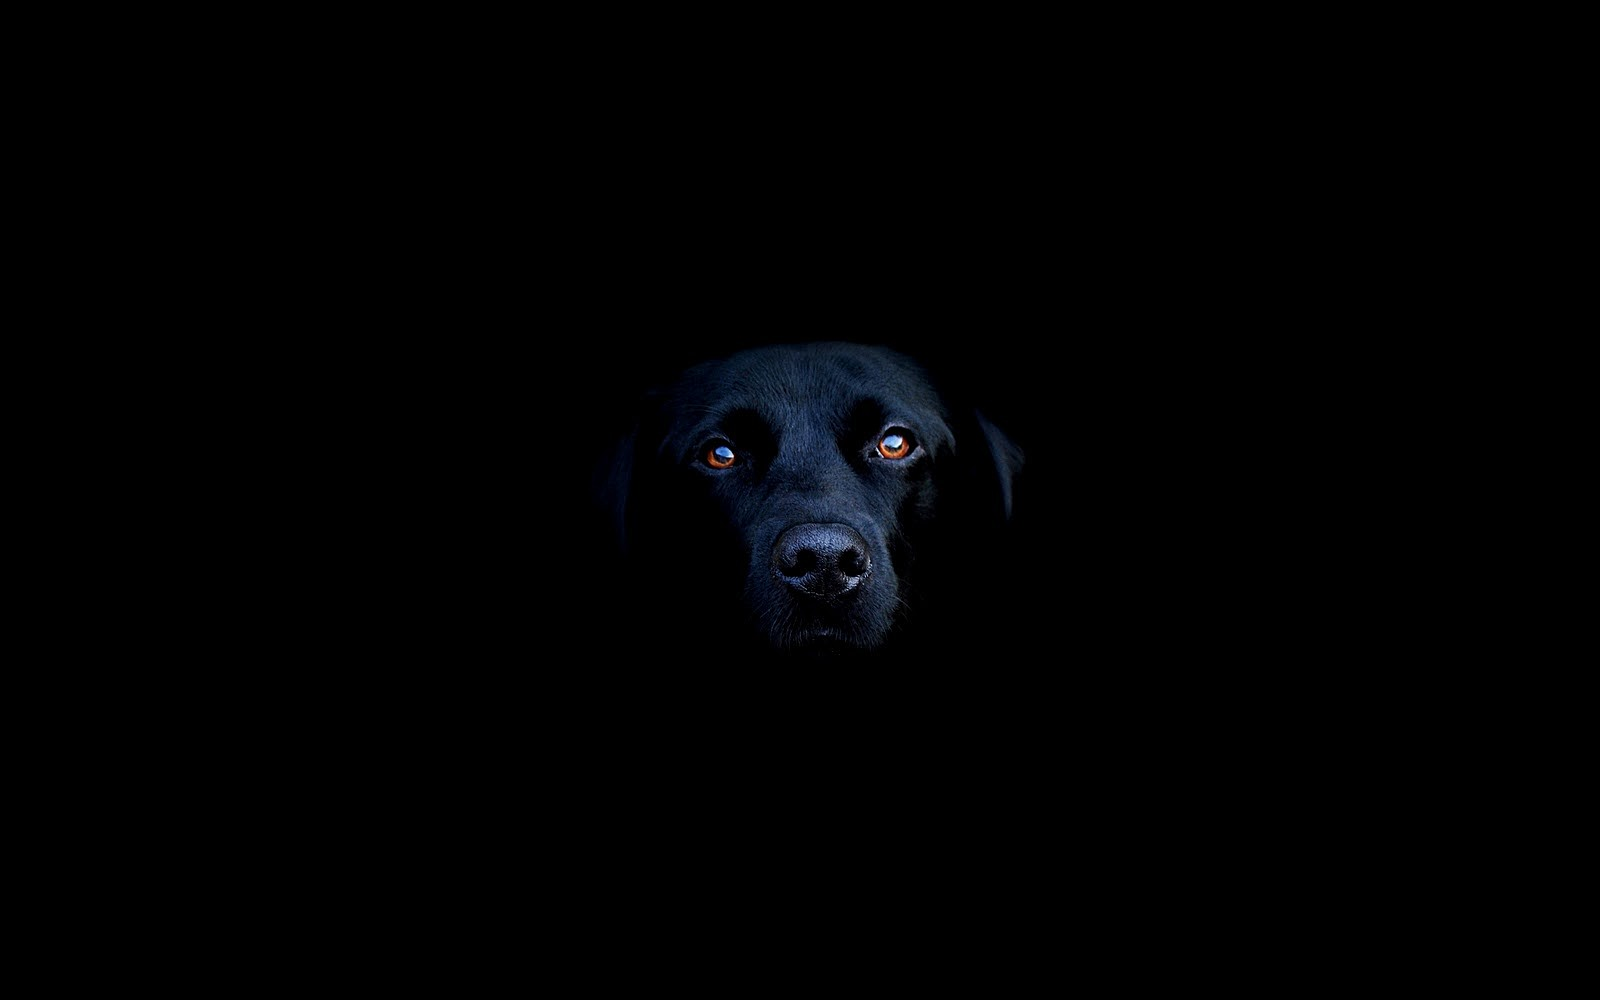 Labrador retriever on a black background